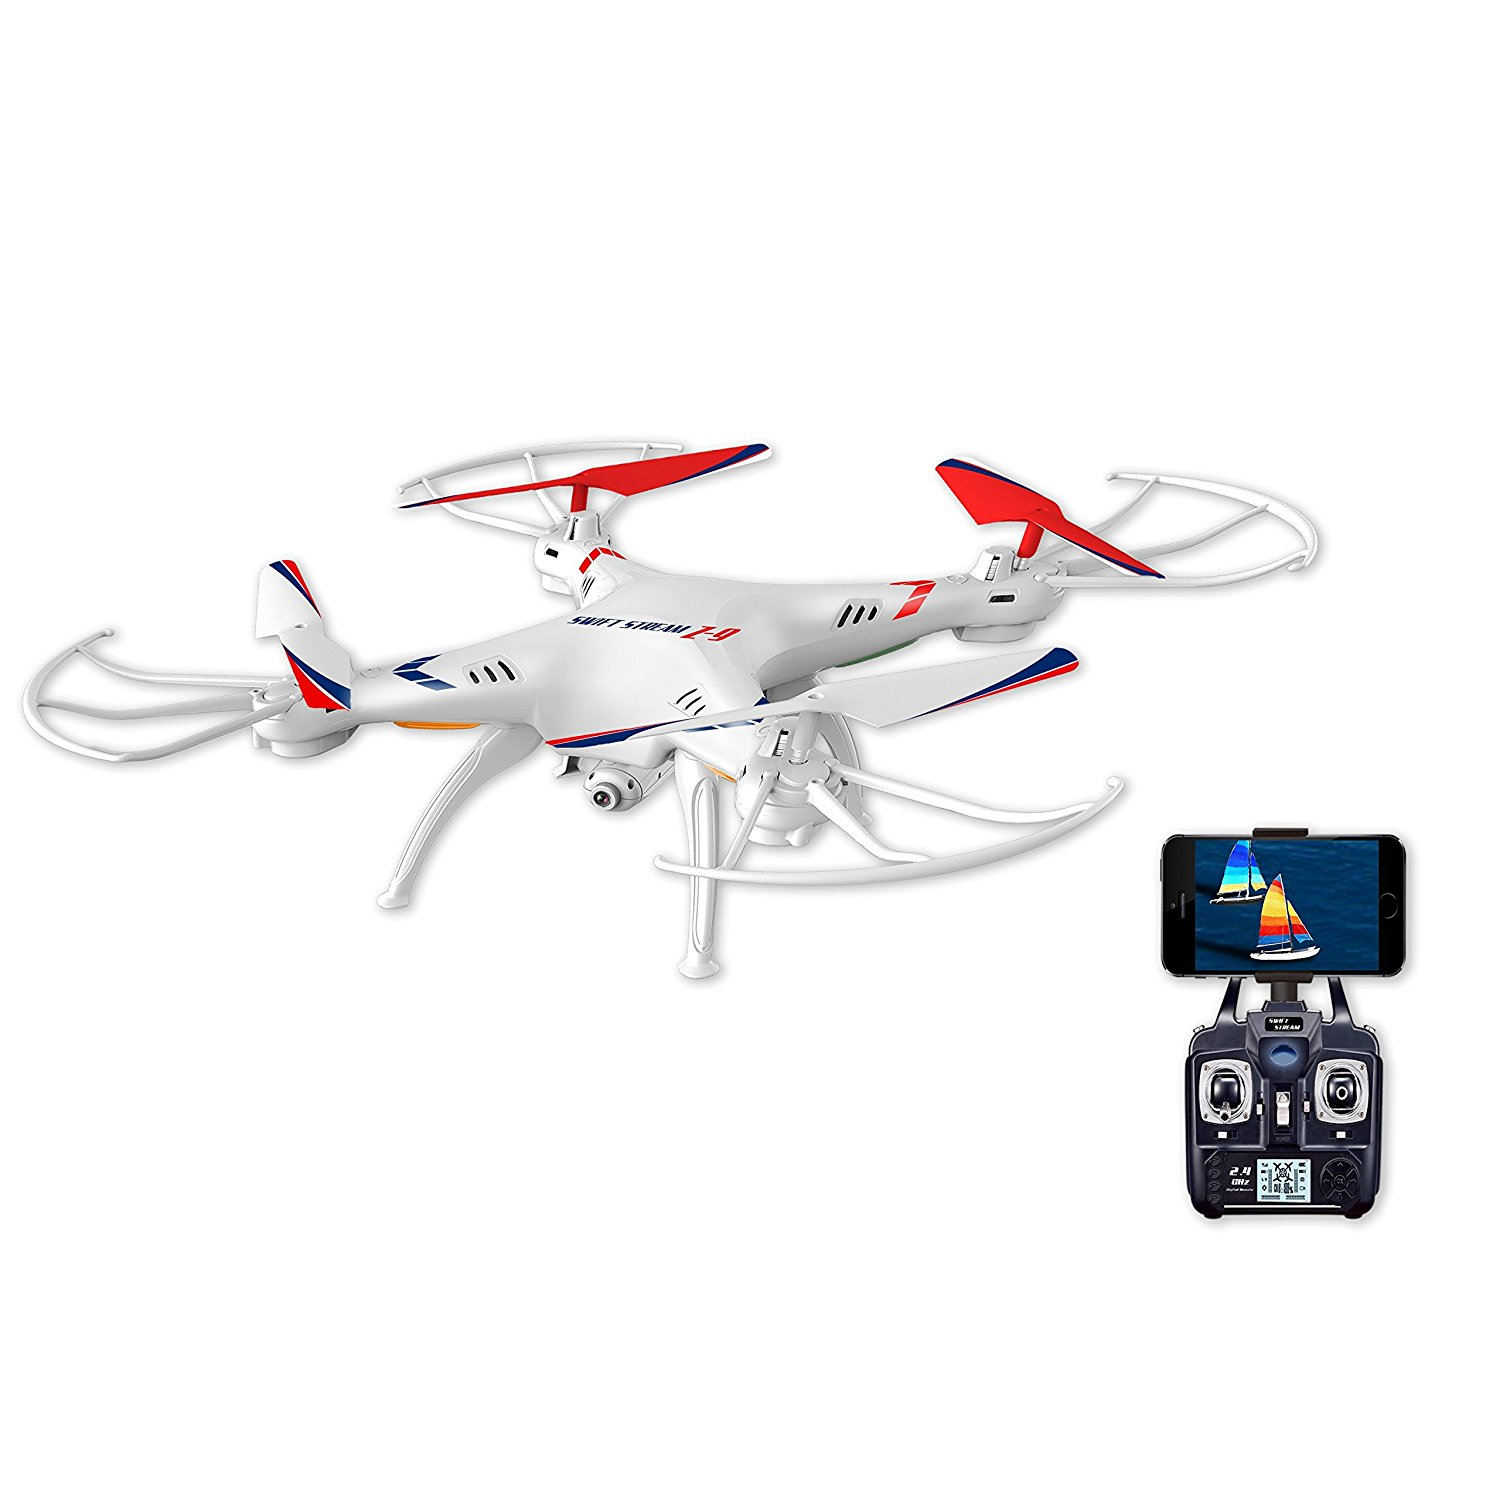 Amazon.com: Swift Stream Z-9 Camera Drone, White: Toys & Games